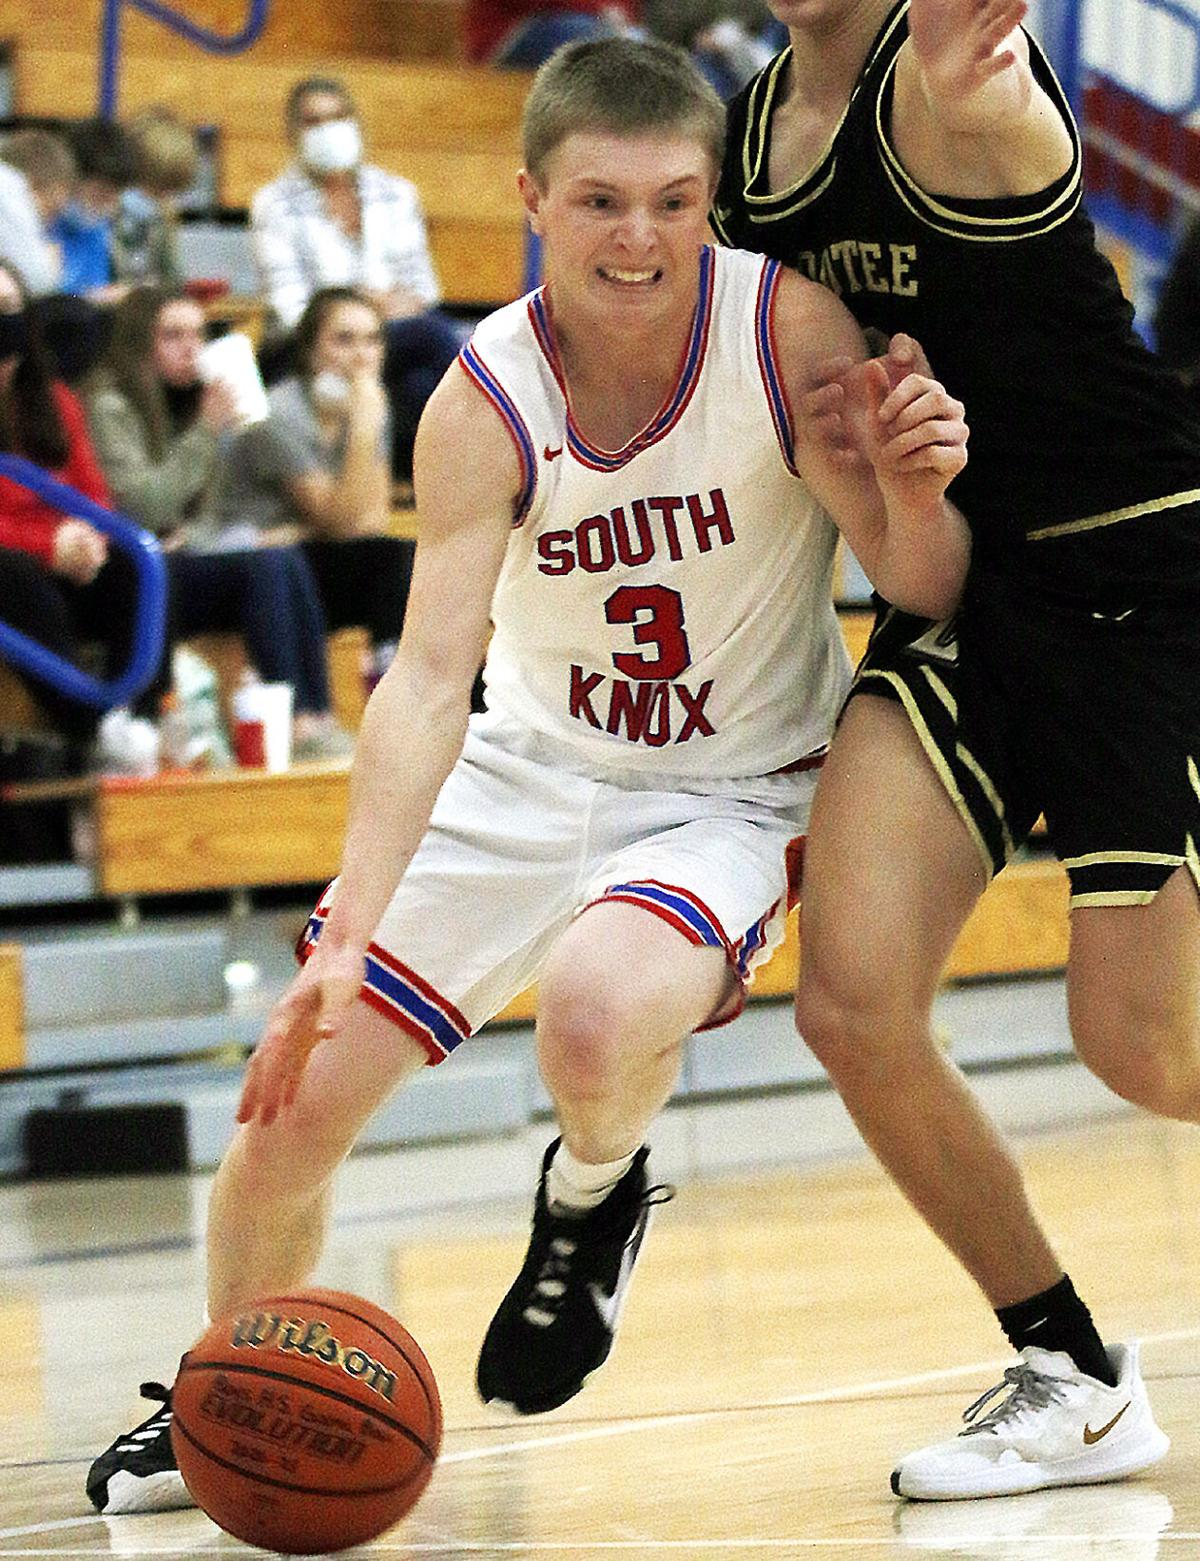 South Knox's Holscher is S-C's best